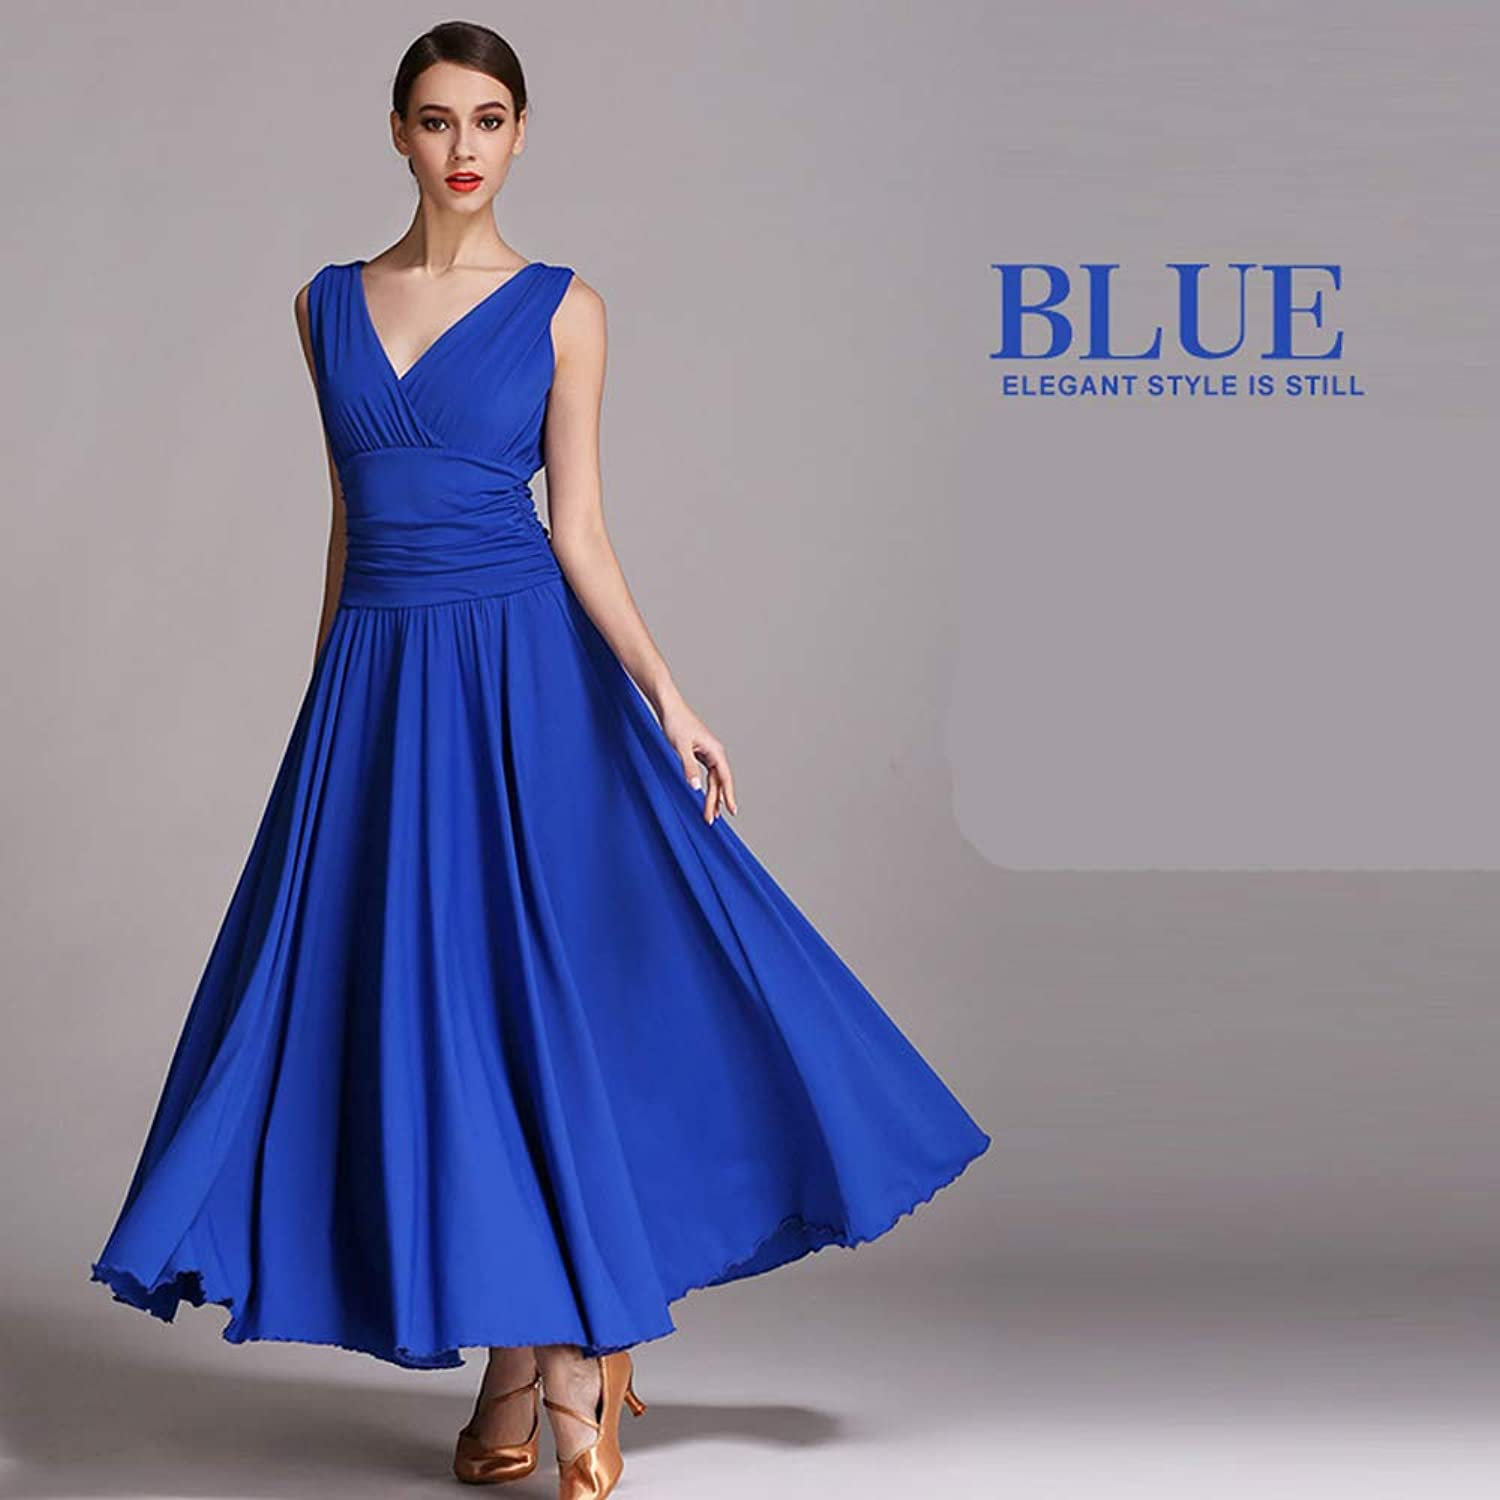 Women Classic Dance Skirt Latin Dance Belly Dance Costumes Deep VNeck blueee Milk Fiber Ballroom Dancing Plus Size XL 2XL Prom Dress